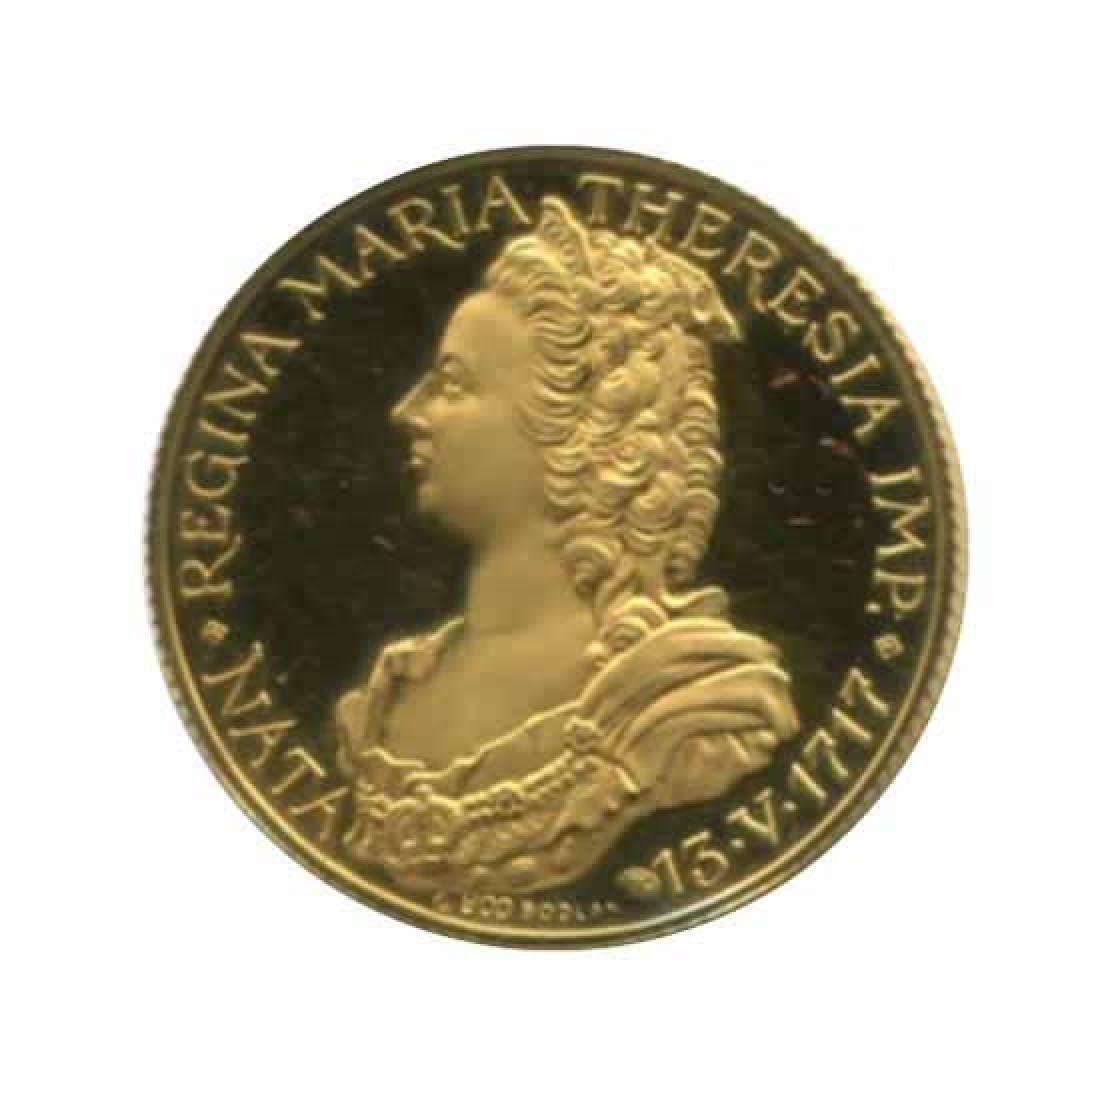 Maria Theresa 9.5g commemorative gold medal PF